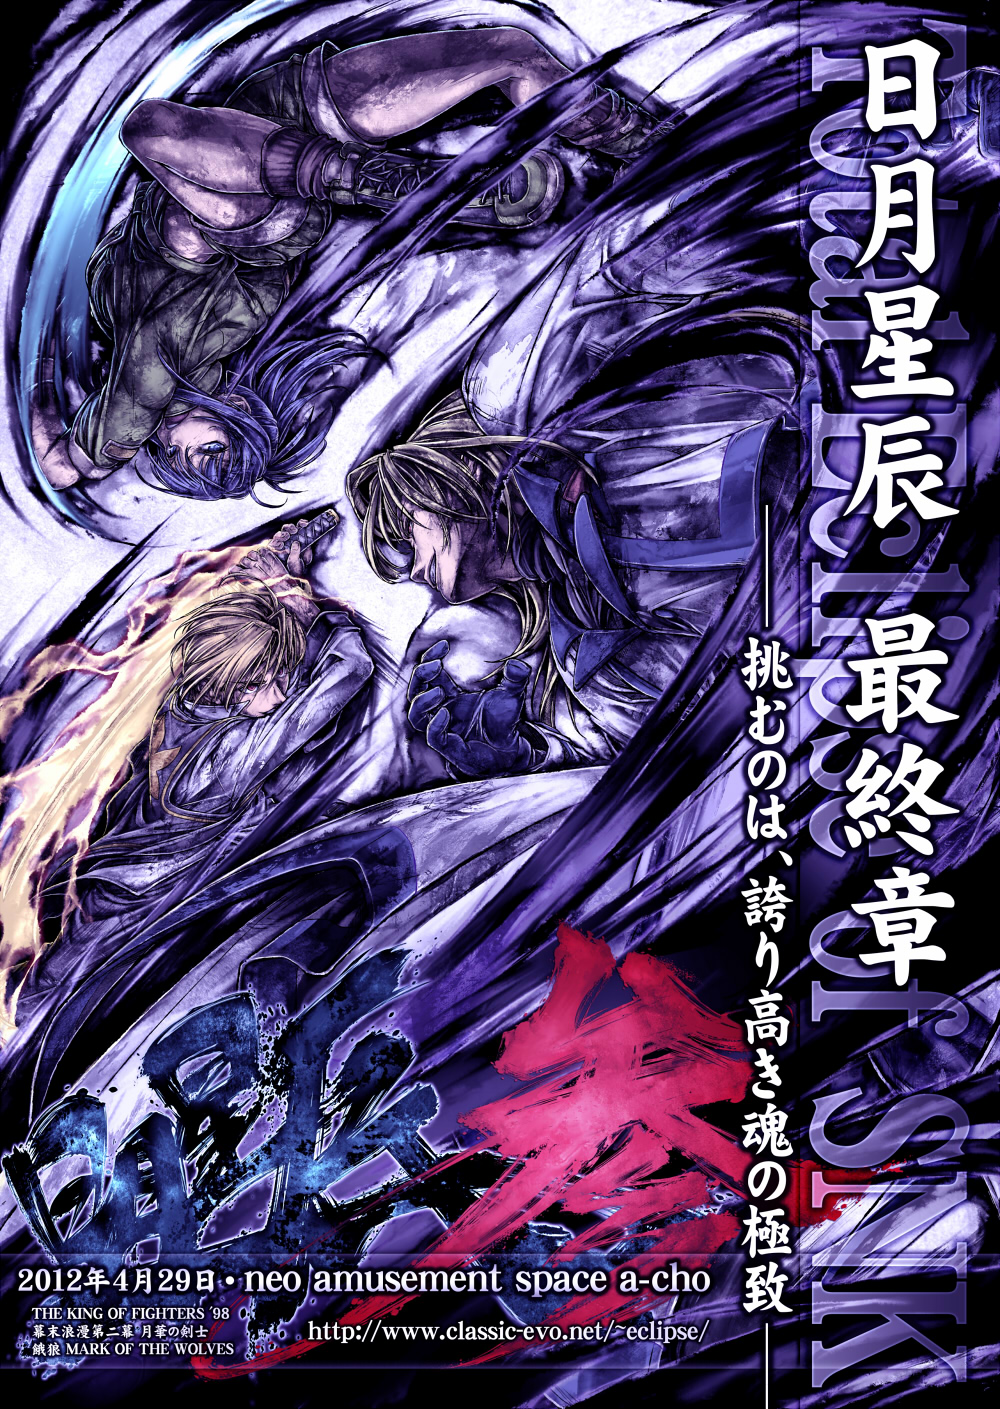 Total Eclipse of SNK 日月星辰 最終章イラスト